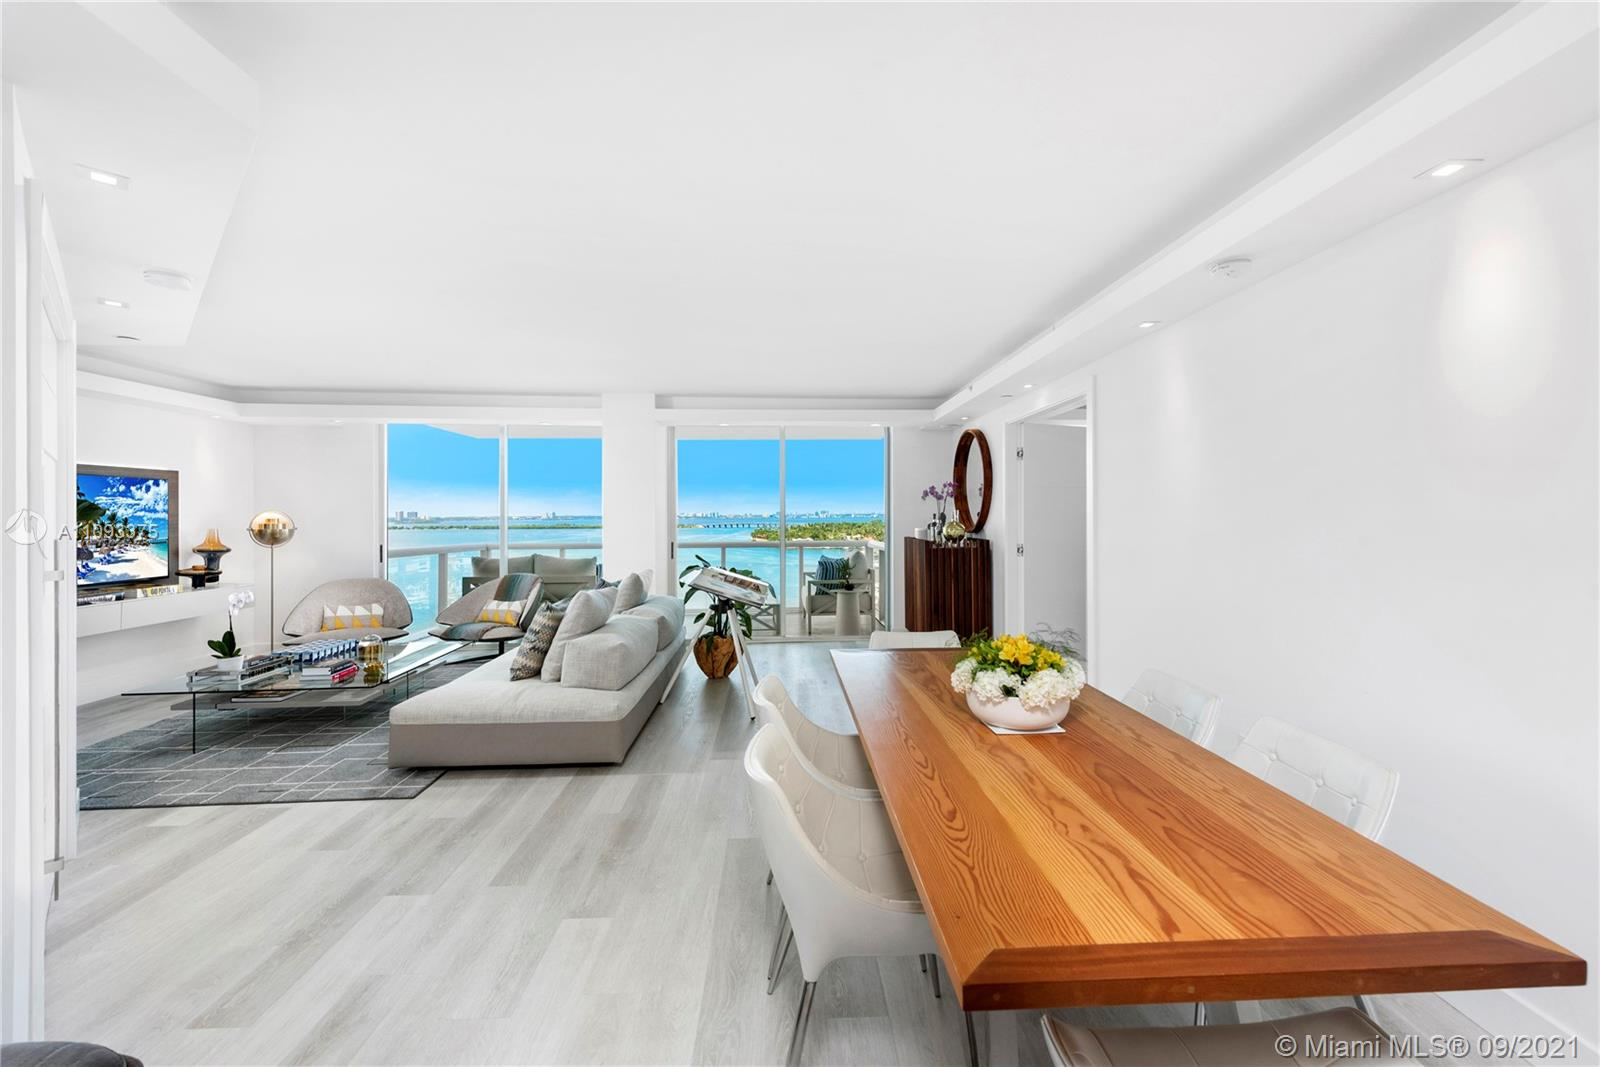 Embodying the definition of timeless and modern sophistication, with no expense spared, experience this 2-bedroom 2-bath unit at the Grand Venetian with unobstructed stunning views of Biscayne Bay. This smart-home enabled unit also features white oak flooring throughout, top of the line kitchen appliances, Quartz counter tops, custom doors, 2 balconies and floor-to-ceiling glass sliders throughout for seamless indoor/outdoor living. The Grand Venetian is a luxury boutique building with Valet Parking, Concierge Tennis Courts, Gym, and a recently renovated Pool and BBQ/Bar area.